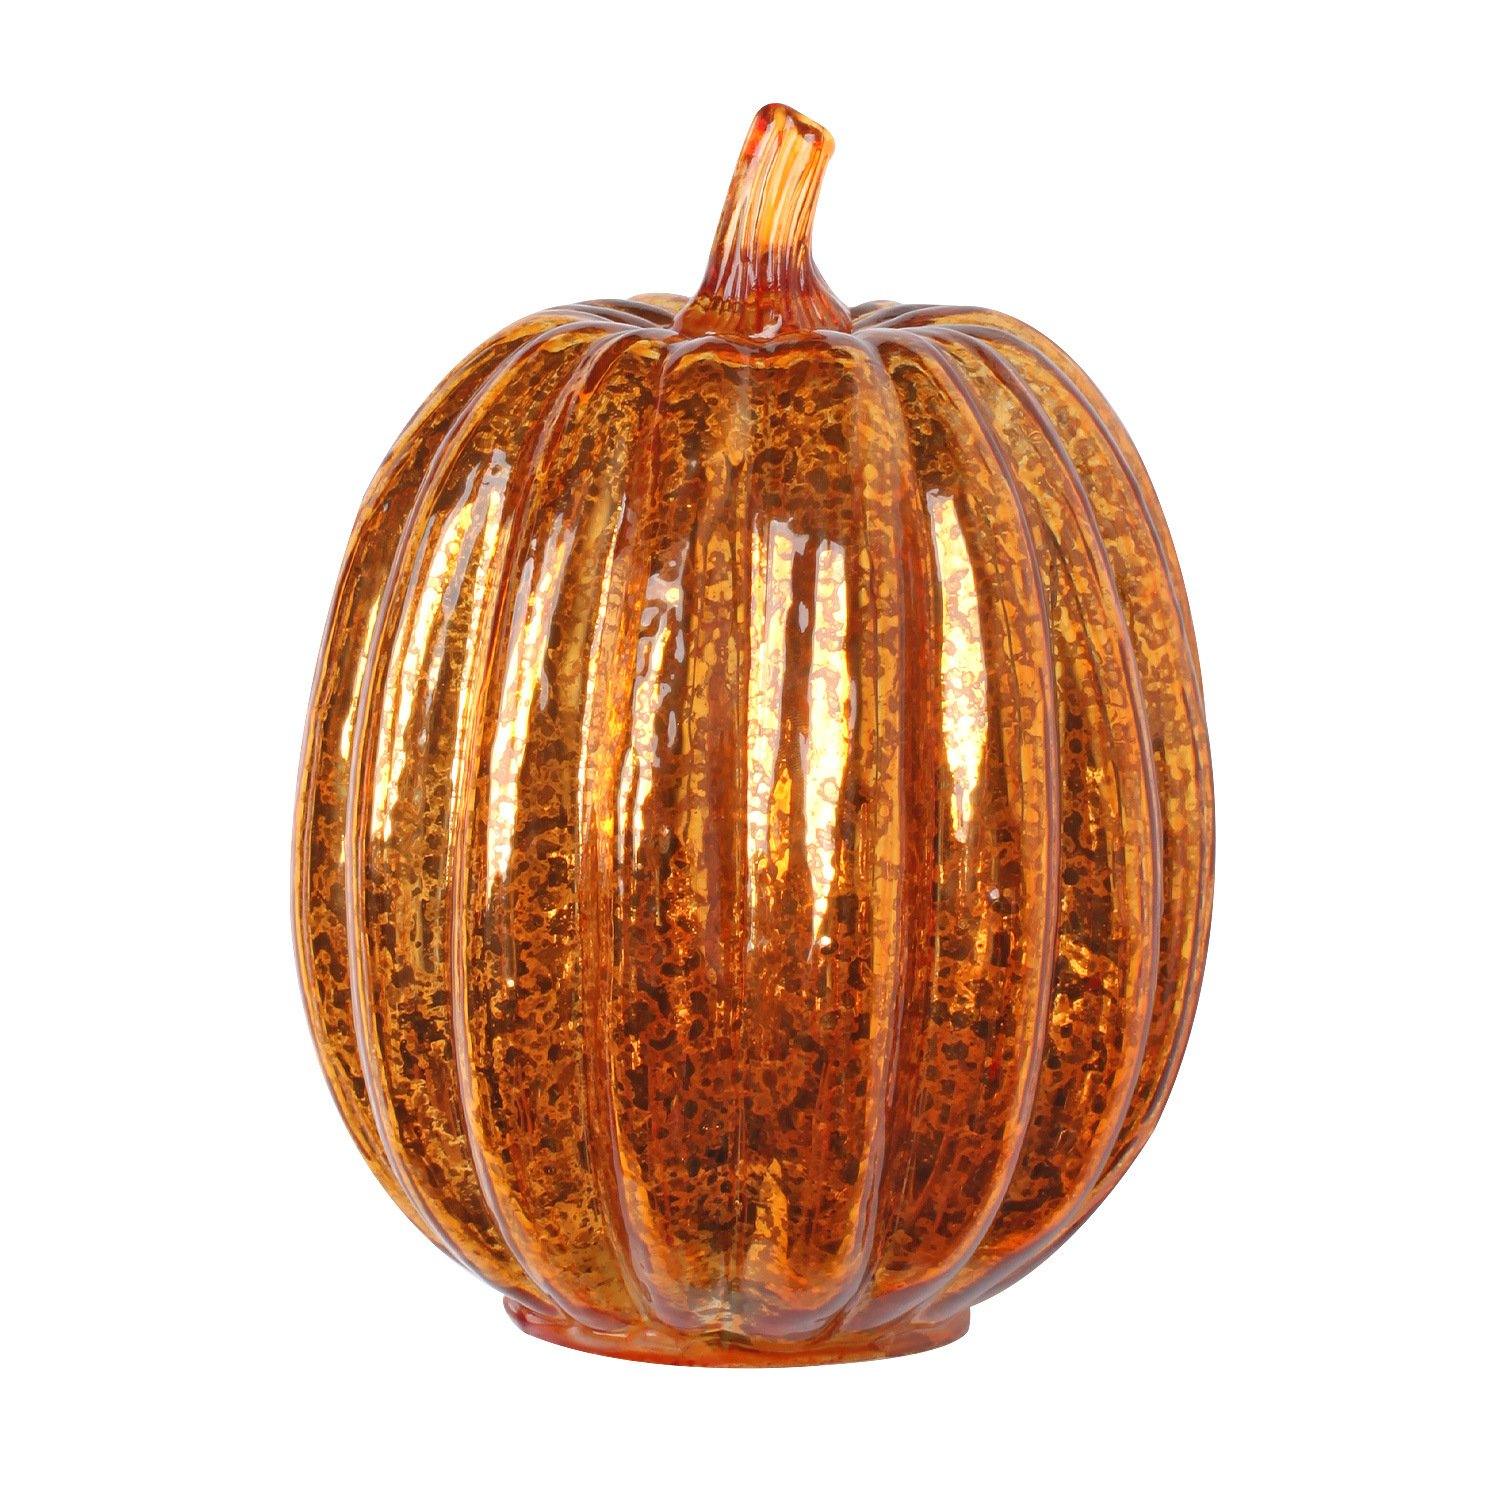 Romingo Mercury Glass Lighted Pumpkin with Timer for Fall Decor, Halloween Lantern, Orange, 7.5 inches